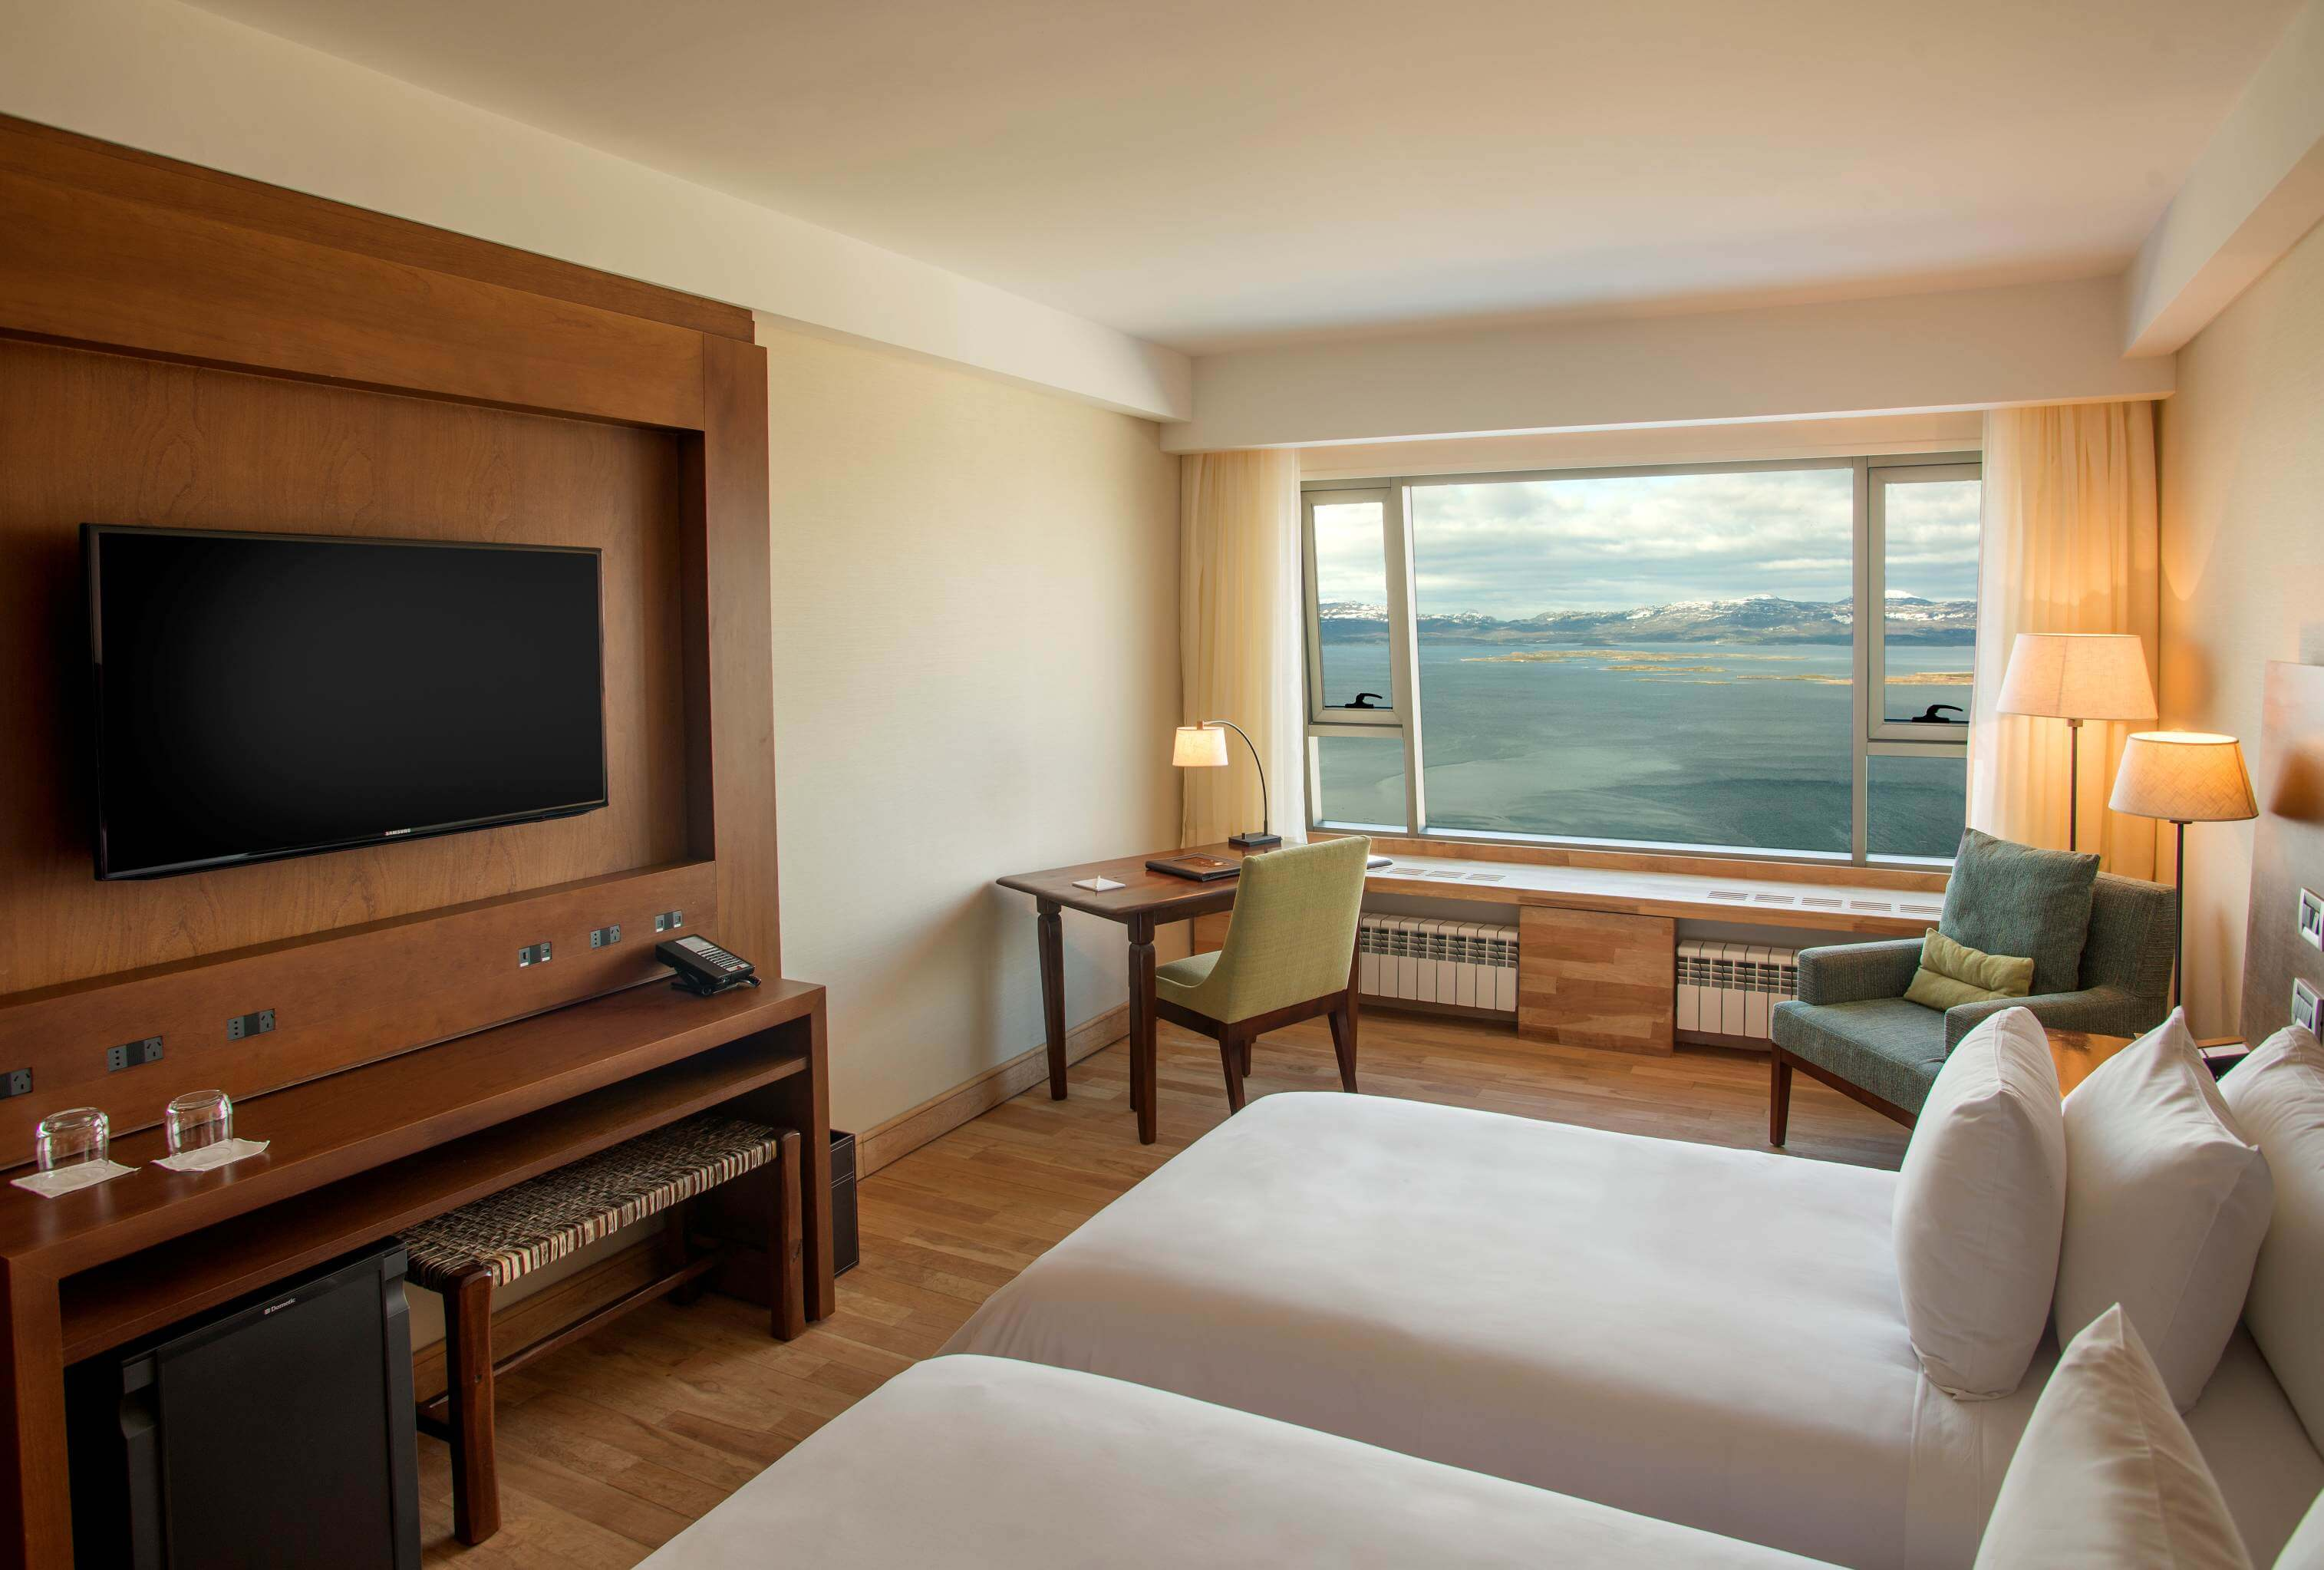 Hotel Arakur Ushuaia, Argentina. Double superior room with two single beds, tv, desk and view of the bay.